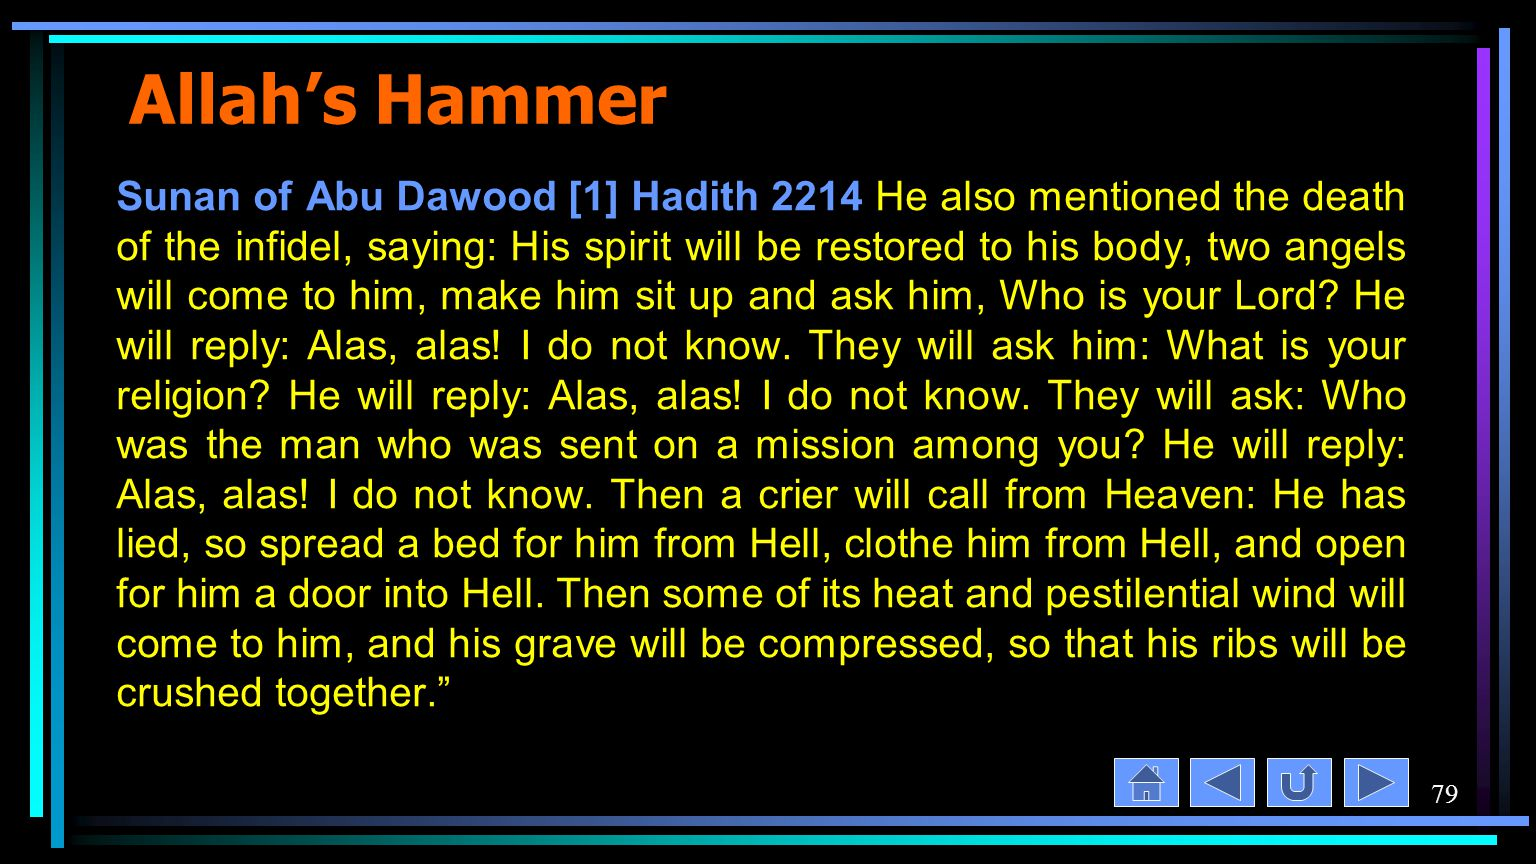 79 Allah's Hammer Sunan of Abu Dawood [1] Hadith 2214 He also mentioned the death of the infidel, saying: His spirit will be restored to his body, two angels will come to him, make him sit up and ask him, Who is your Lord.